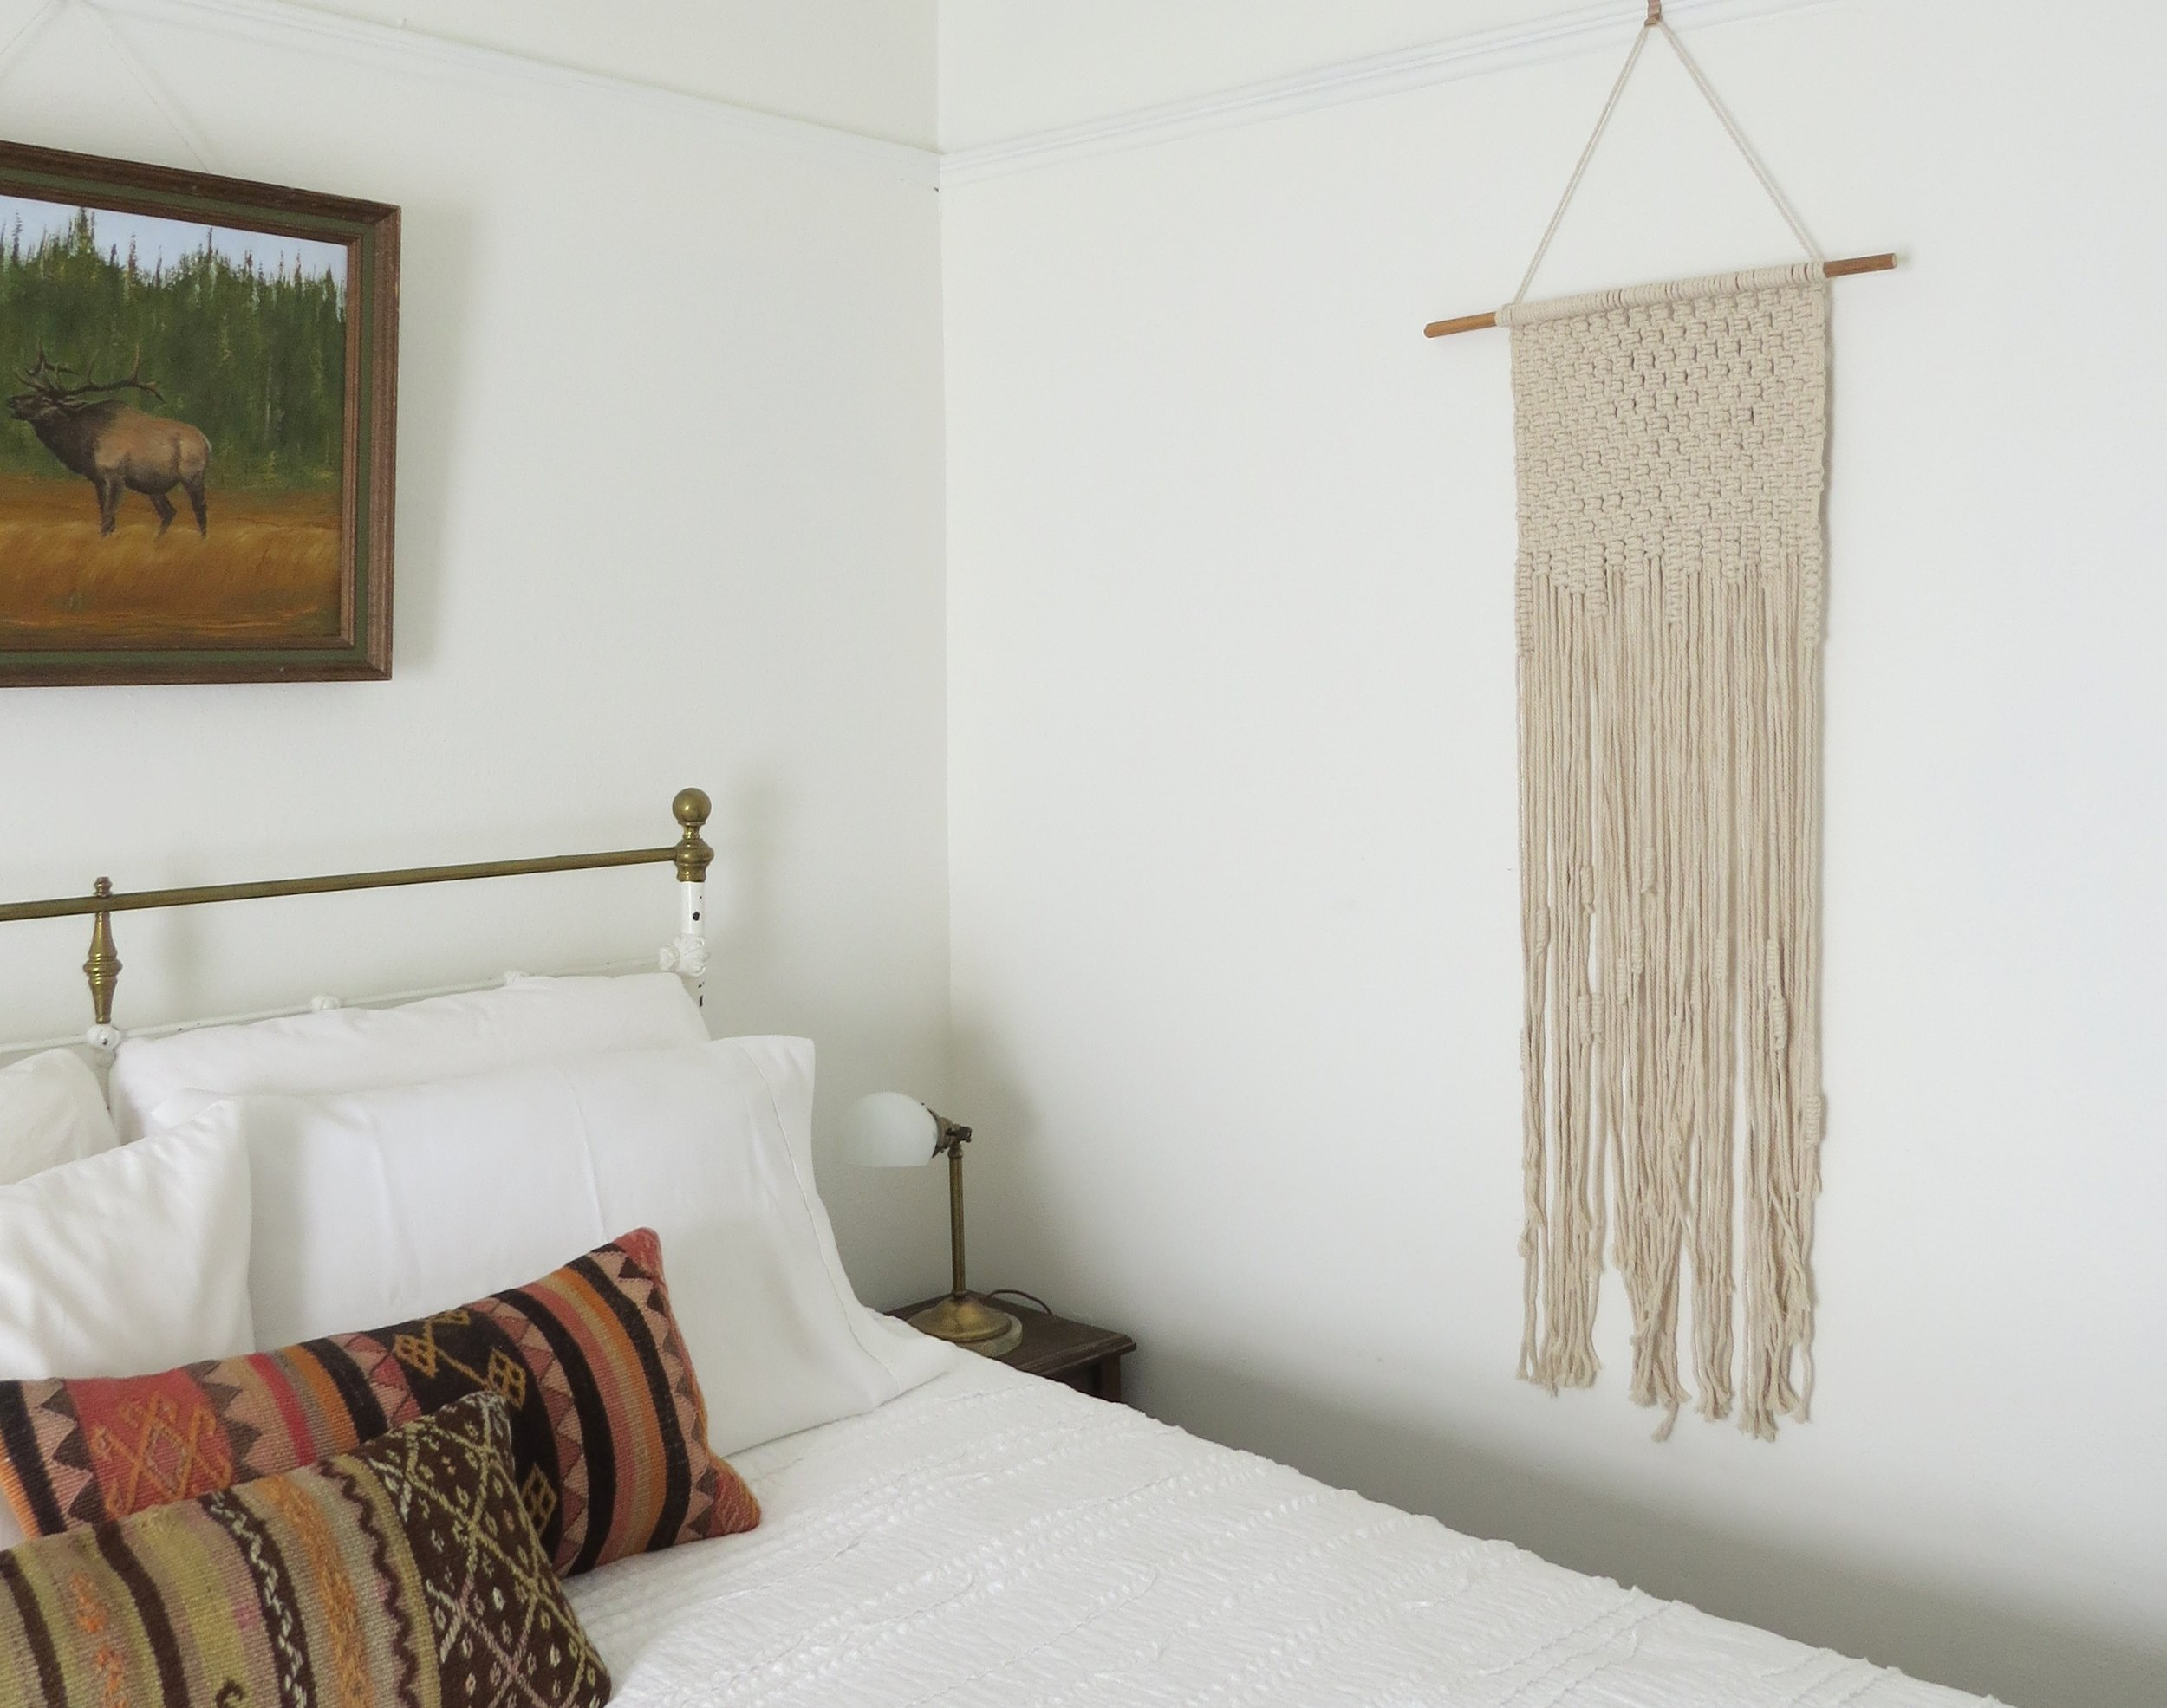 boho bedroom decor with kilim pillows and macrame wall hanging